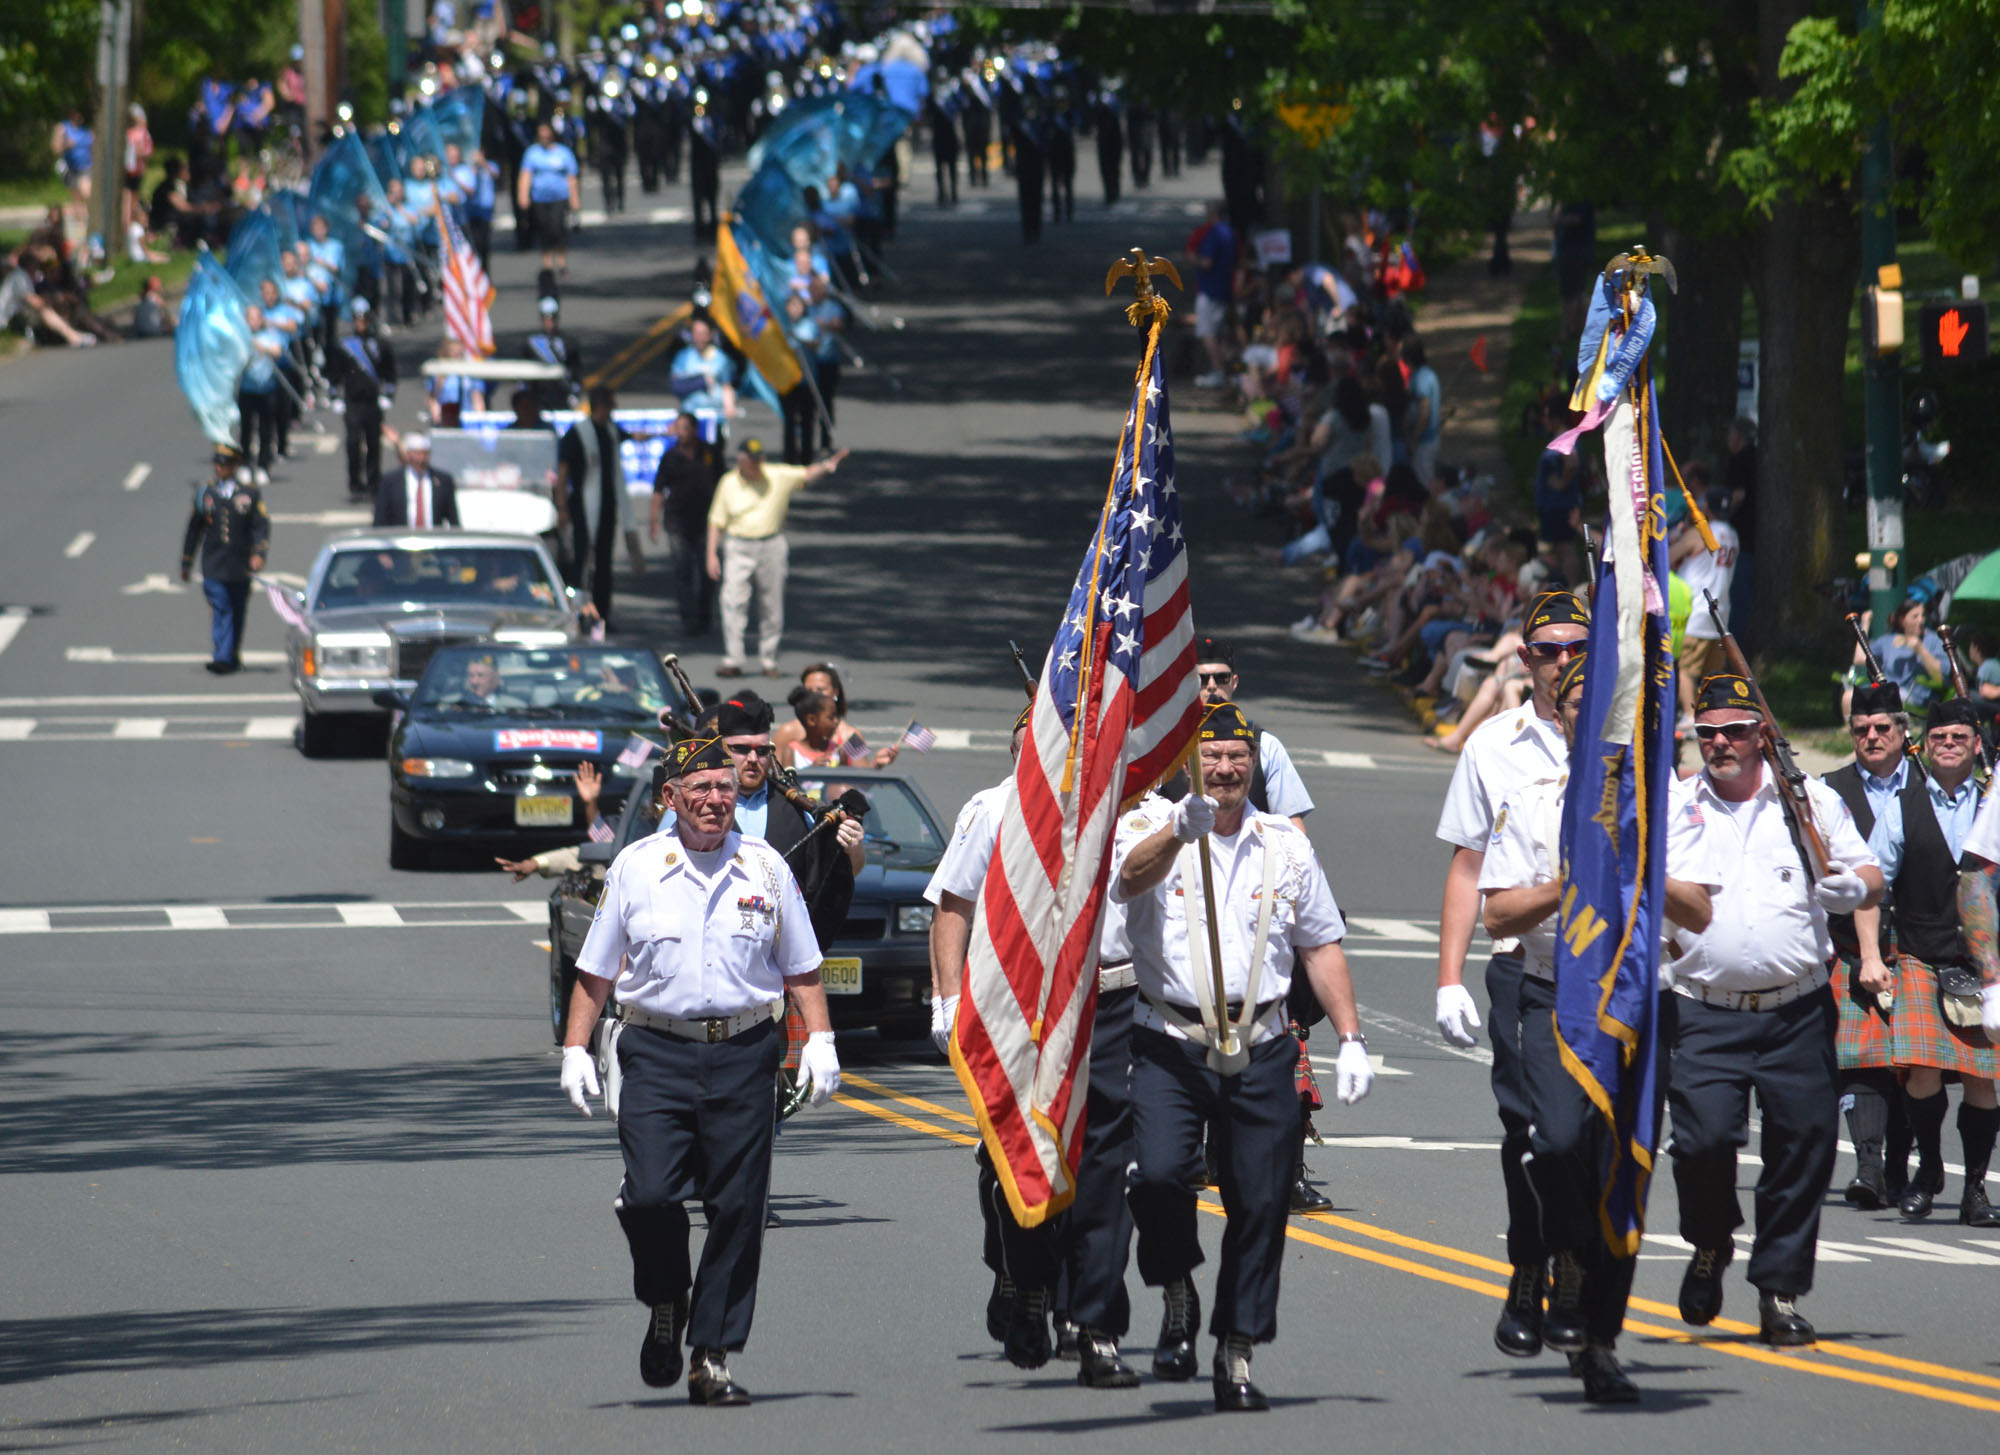 98b0a40c7f2562686a8c_Memorial_Day_Parade_-_Horton_photo.jpg